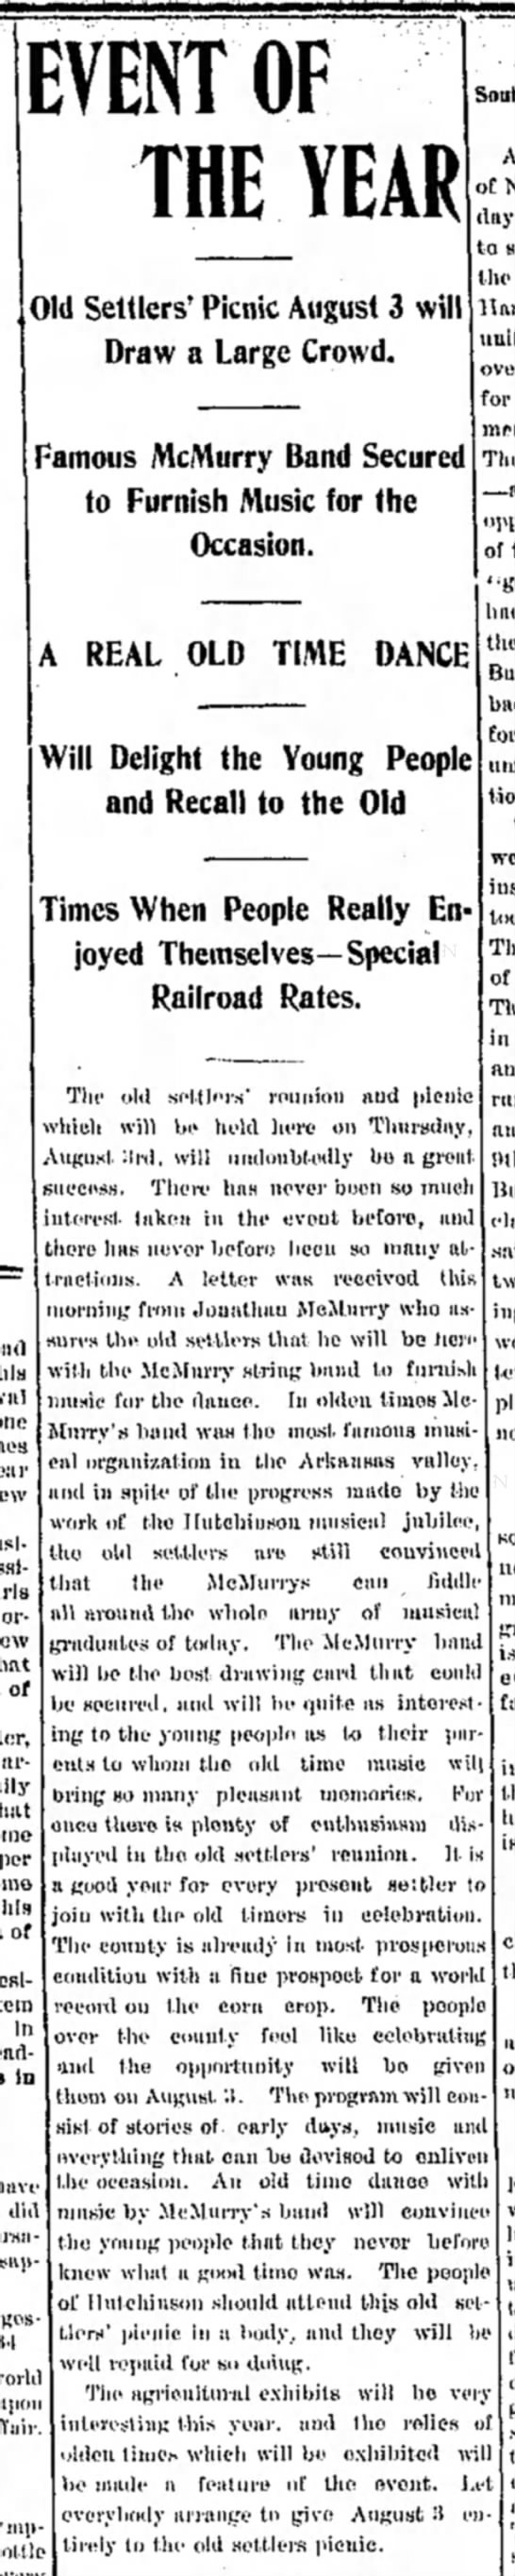 1899 Famous McMurry Band 26 July Hutch News P6 -